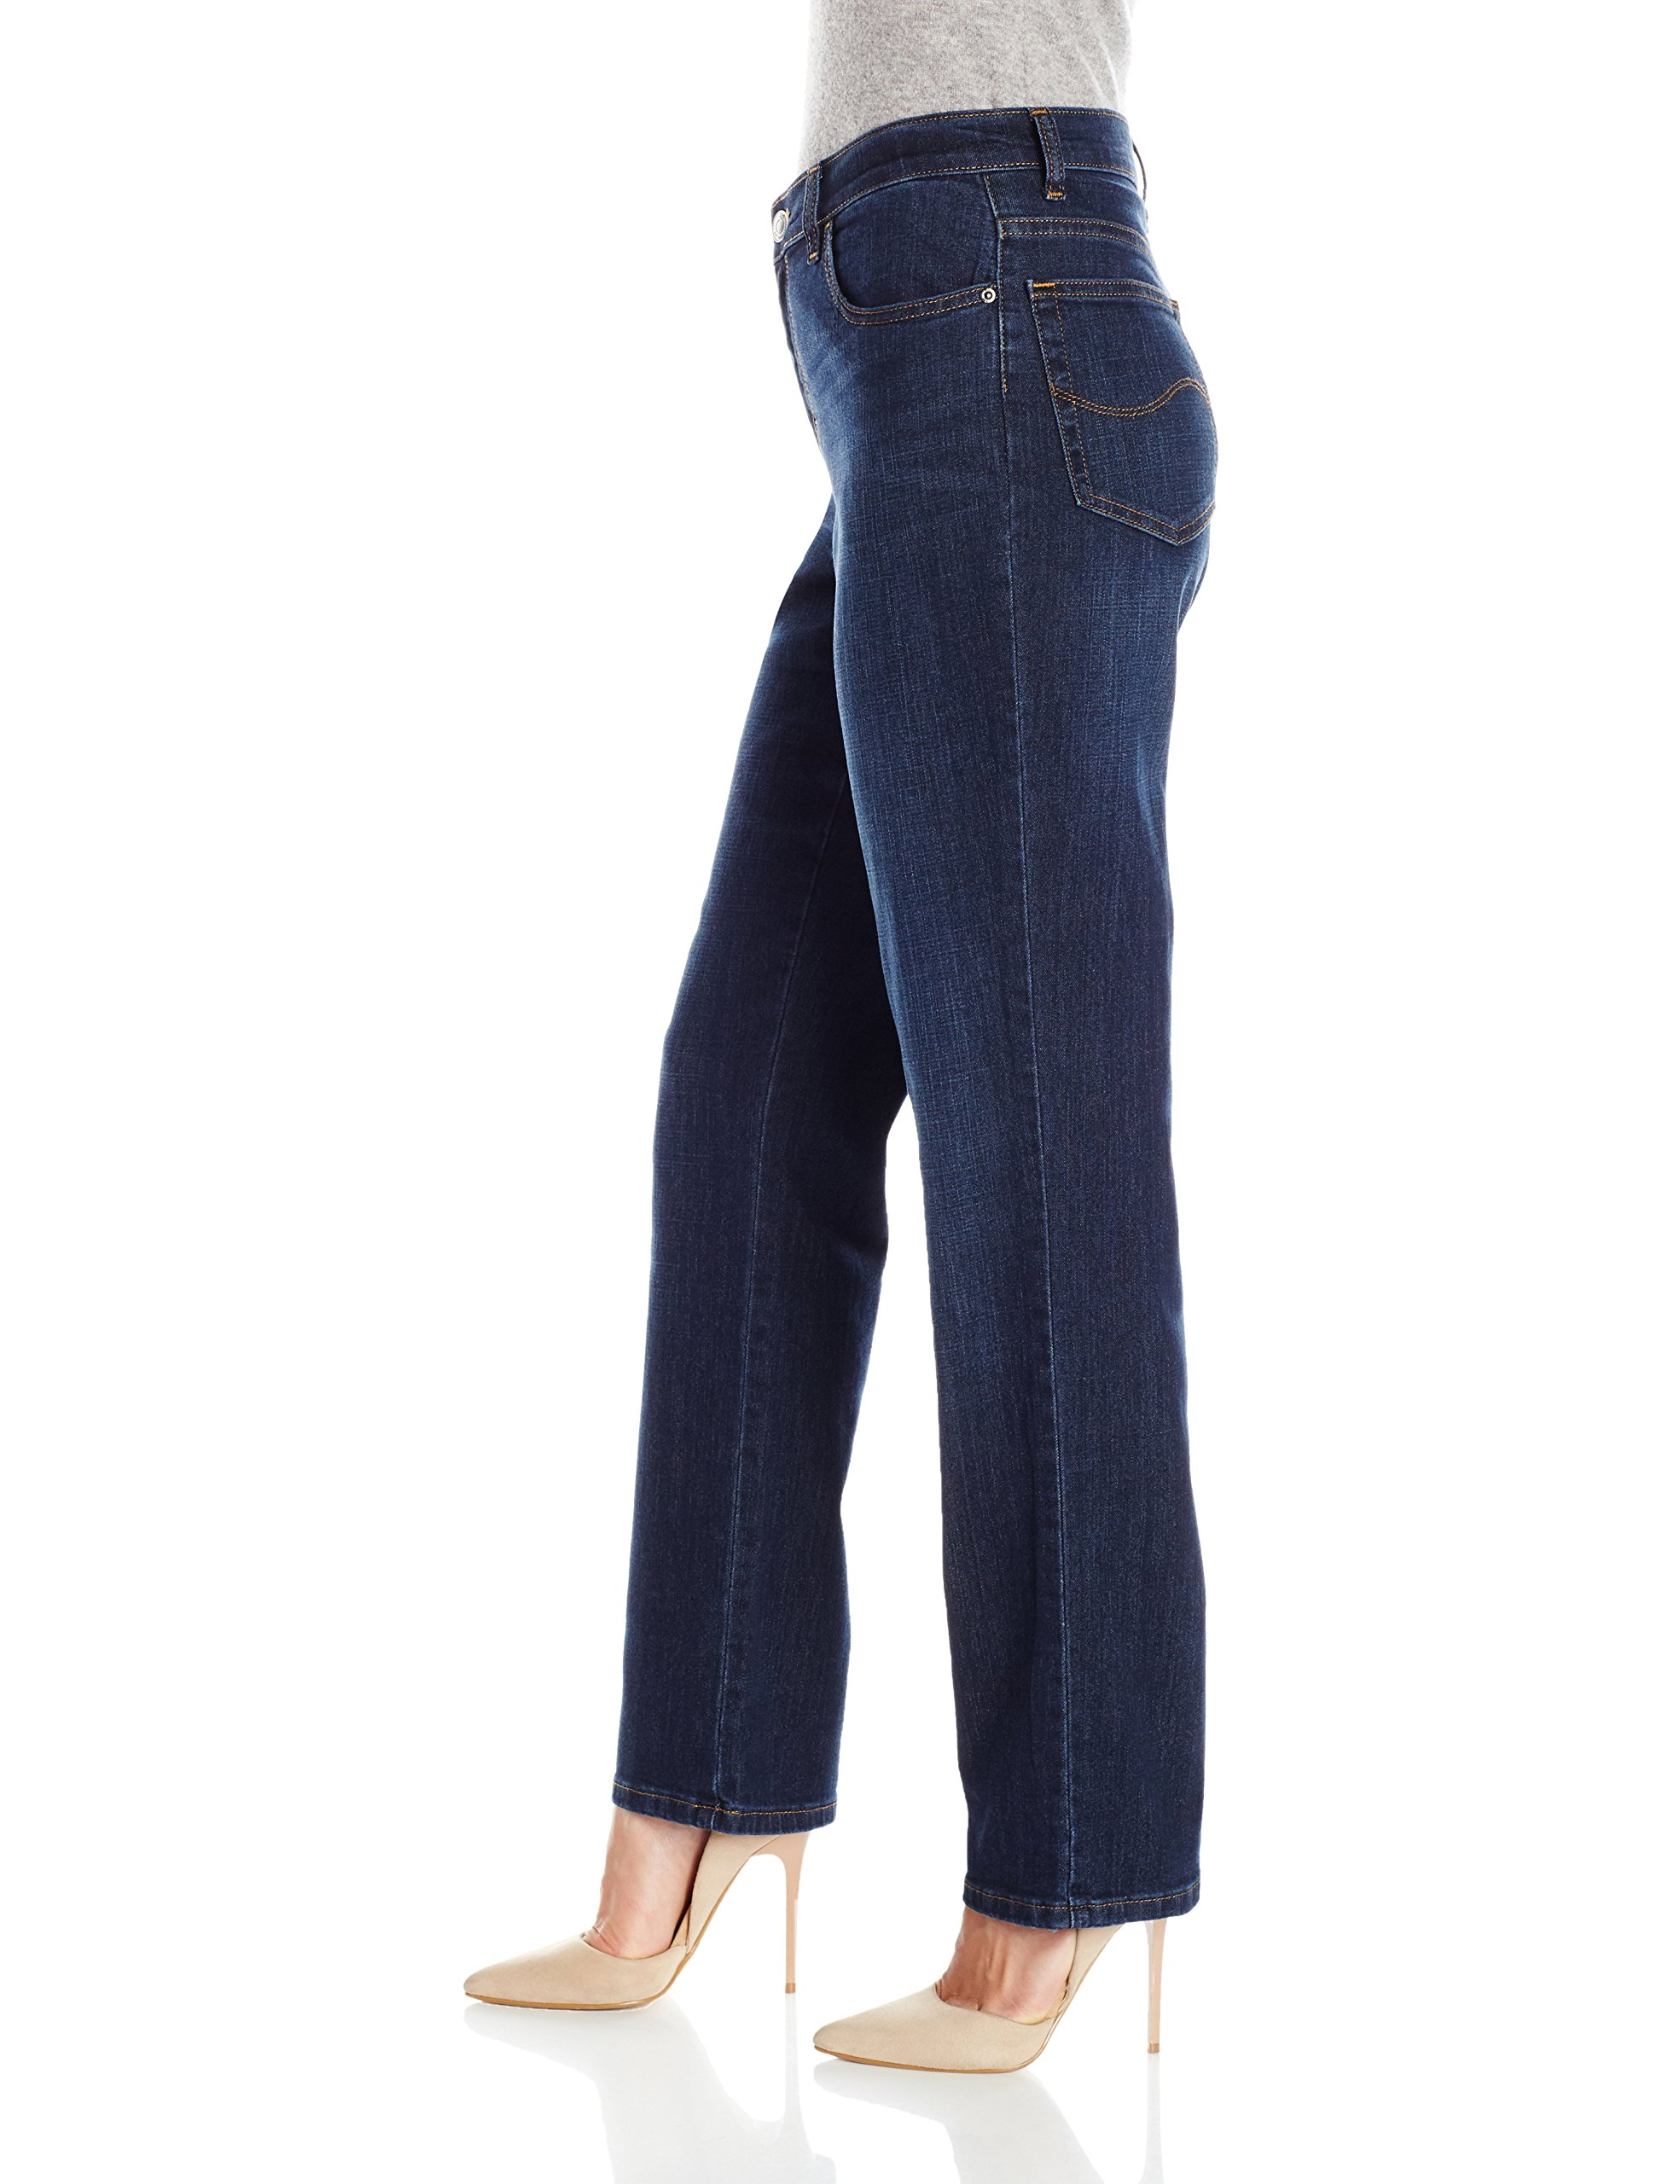 LEE Women's Relaxed Fit Straight Leg Jean, Verona, 16 by LEE (Image #3)